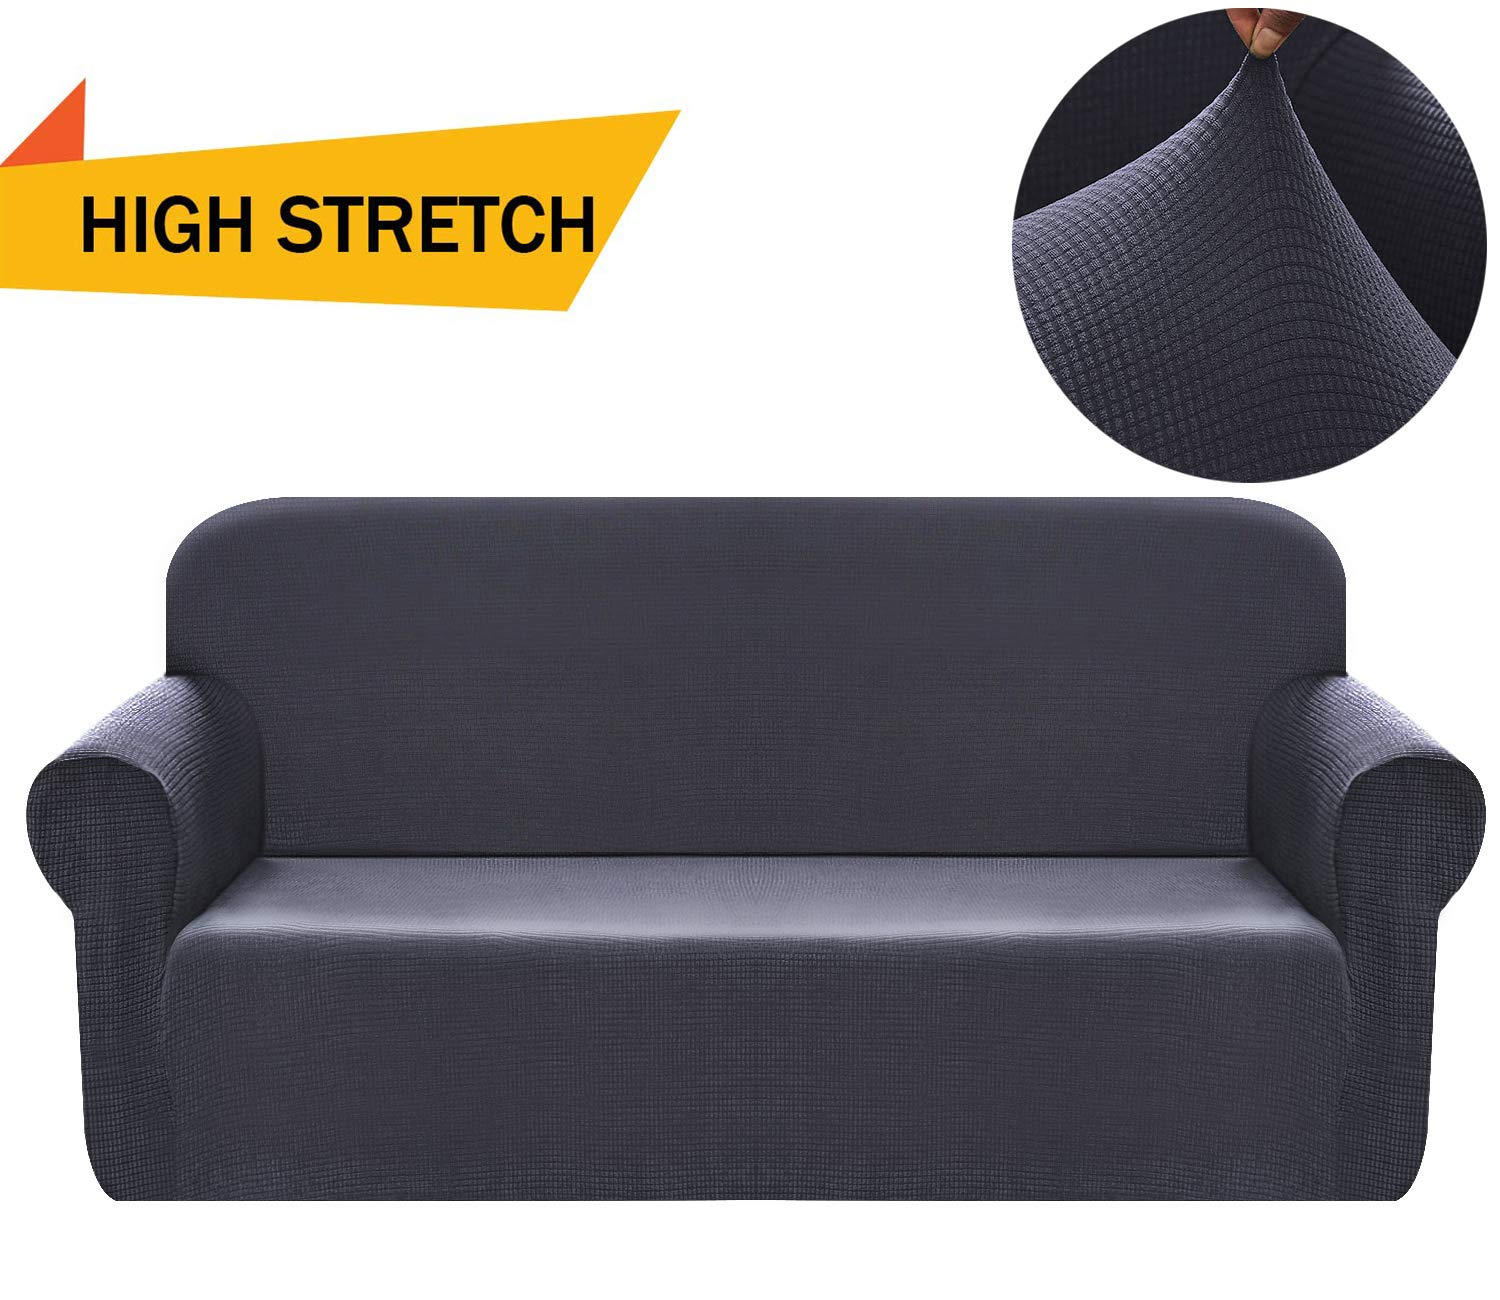 Chelzen Stretch Sofa Covers 1-Piece Polyester Spandex Fabric Living Room Couch Slipcovers (XL Sofa, Dark Gray)